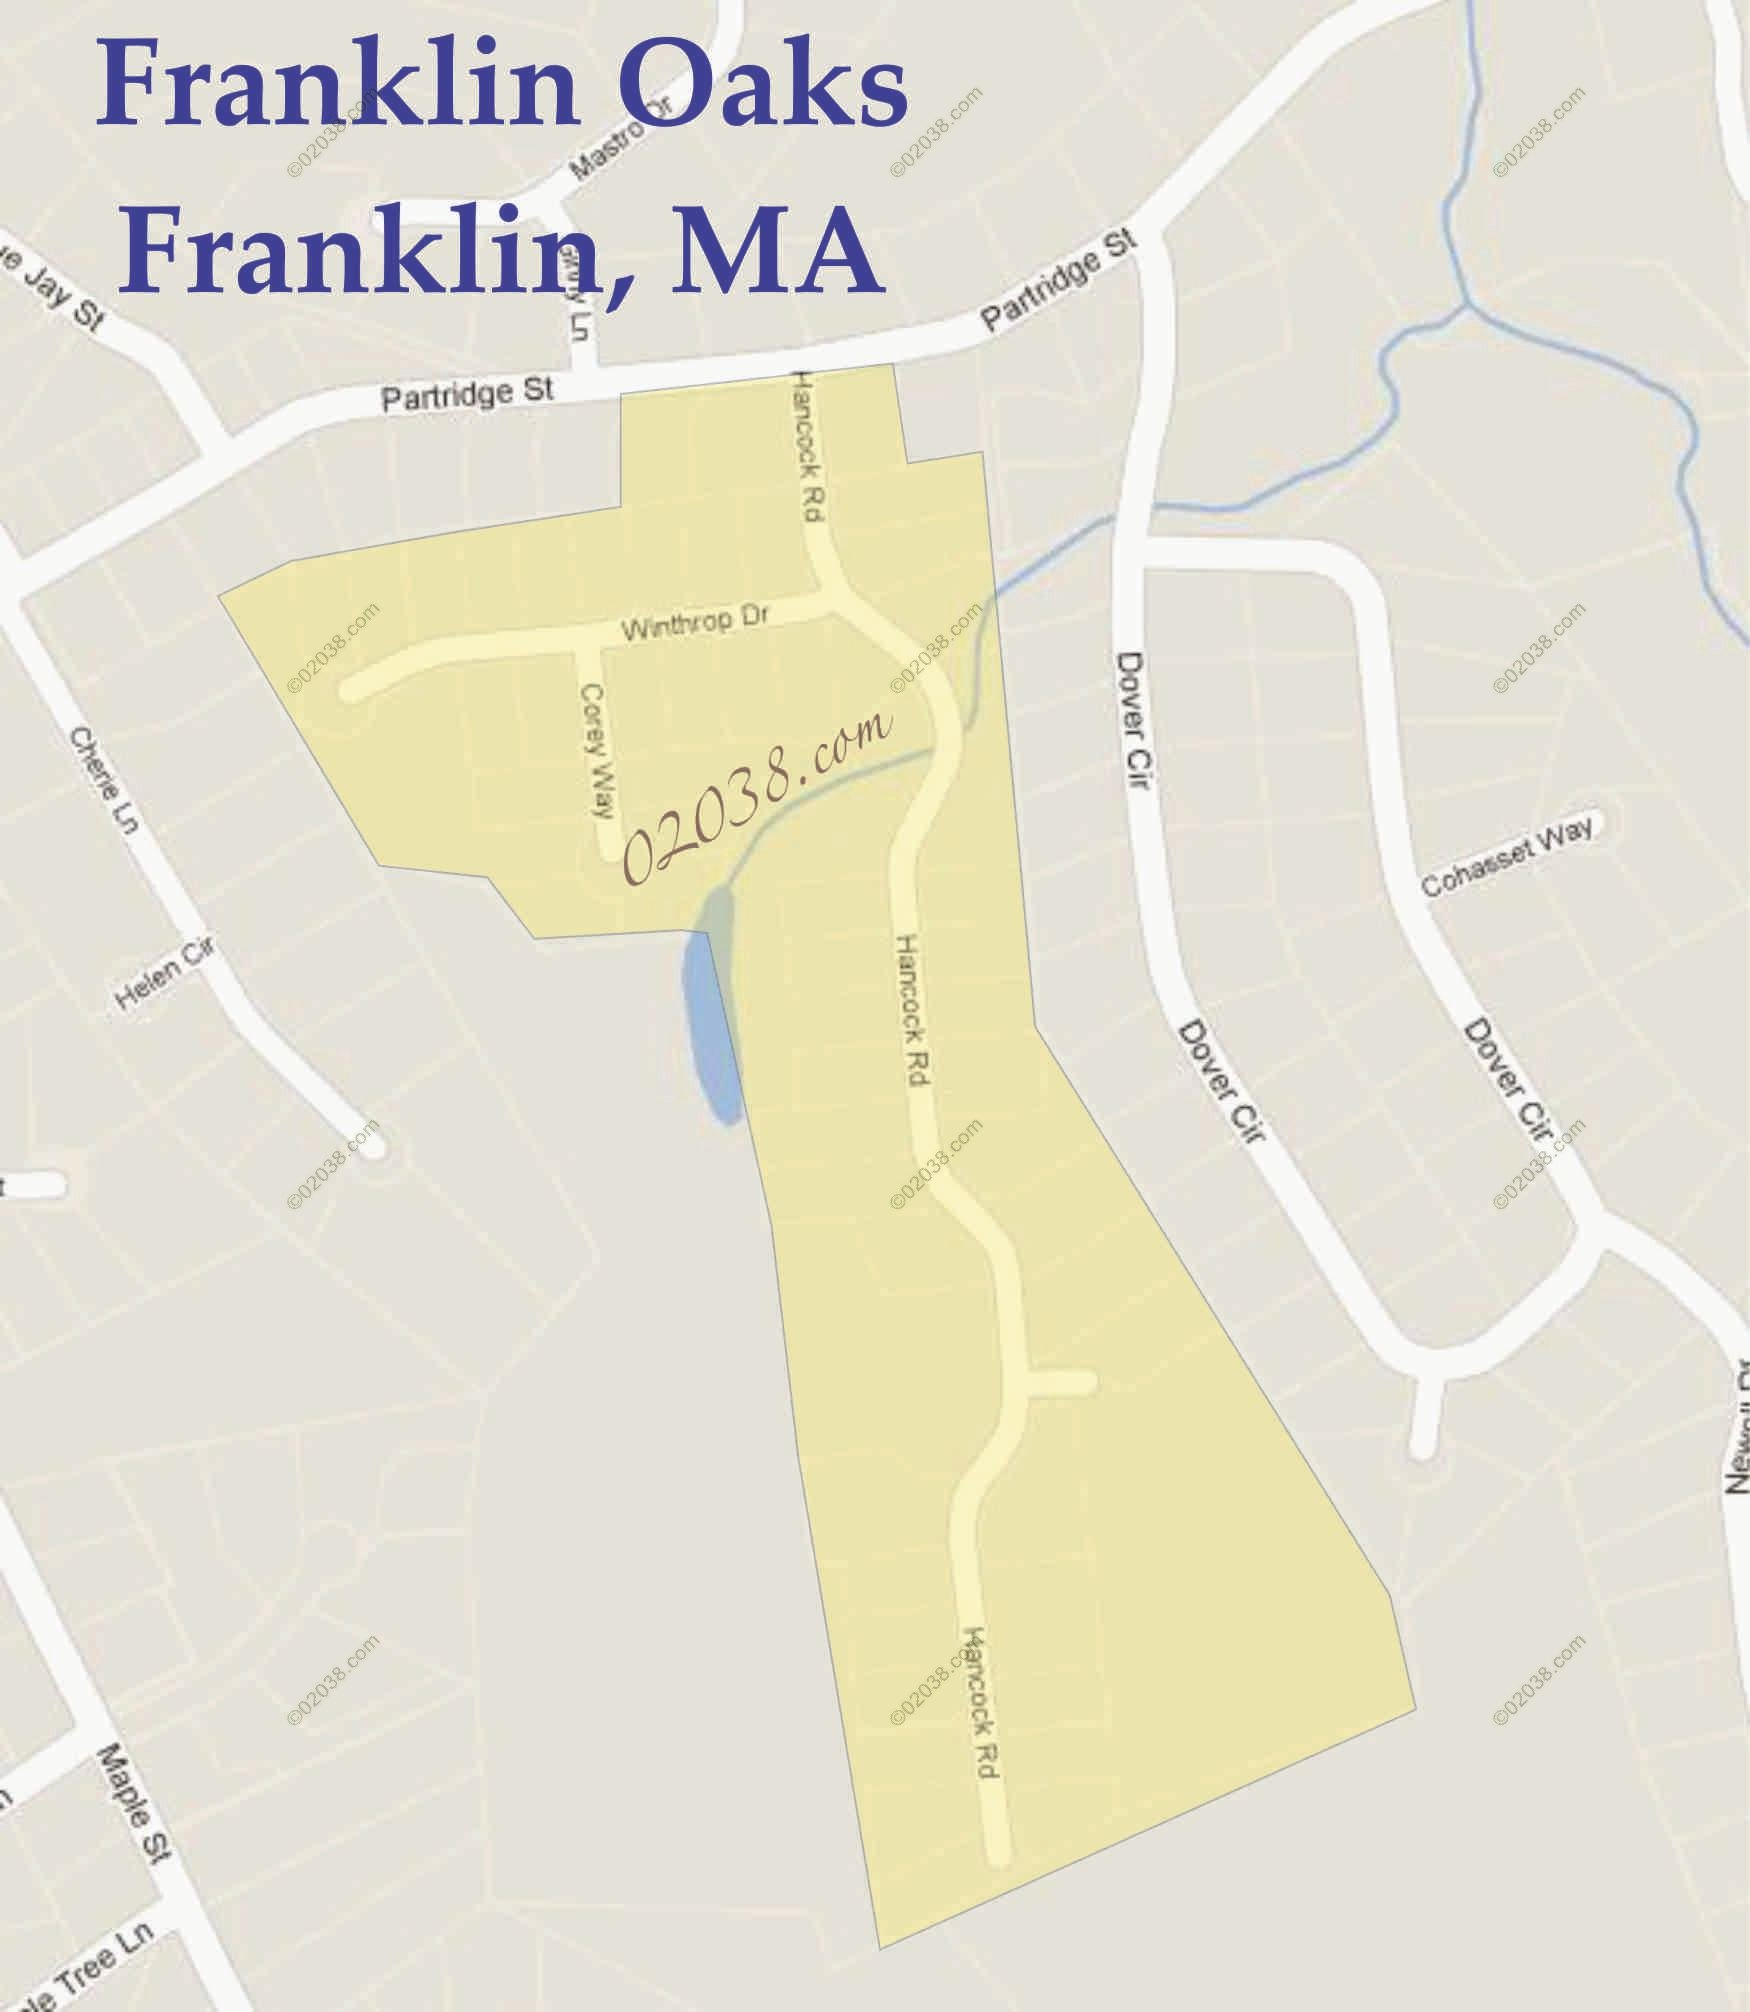 franklin oaks franklin ma map